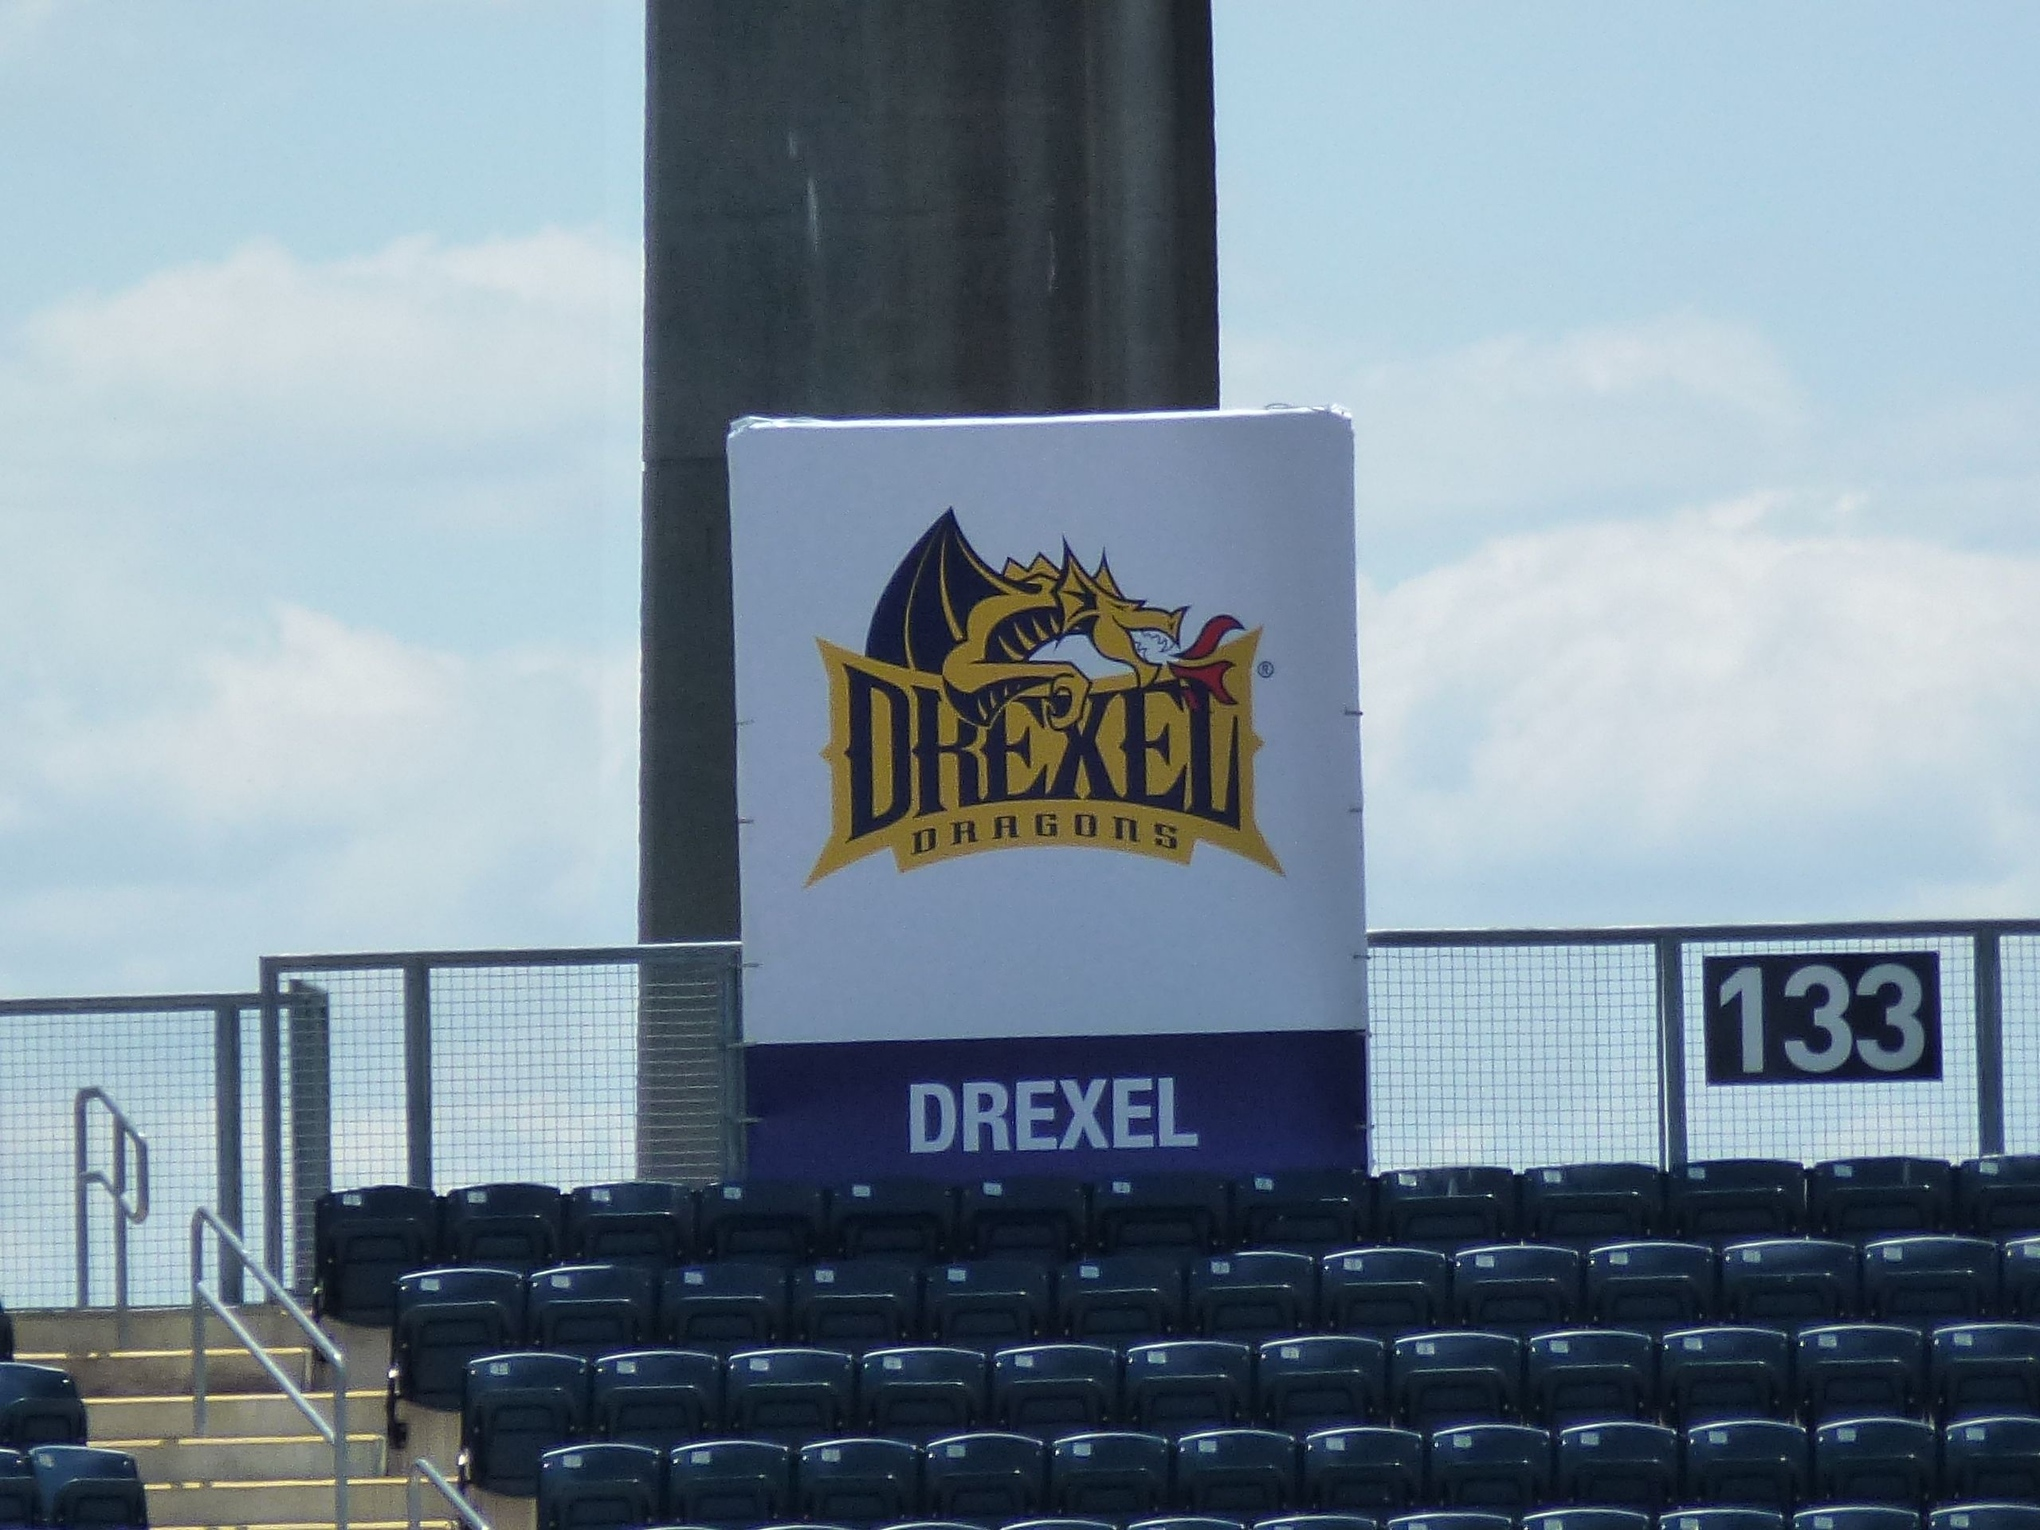 Quality over quantity: Drexel sees impact of new admissions strategy ...